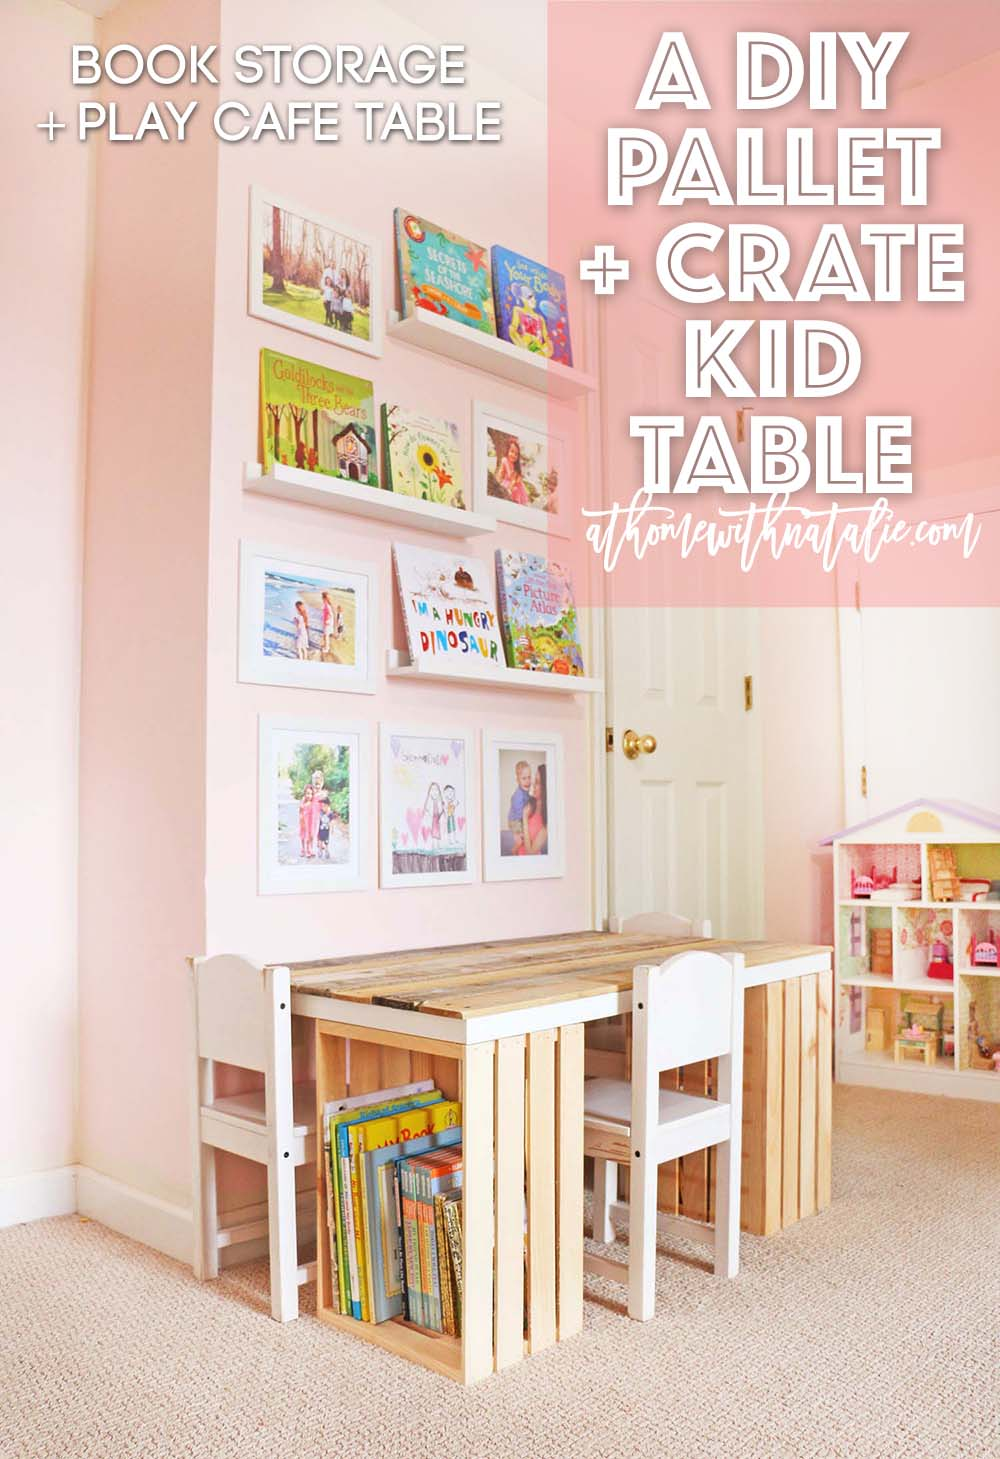 Diy pallet and crate kid table at home with natalie diy pallet and crate kid table malvernweather Images